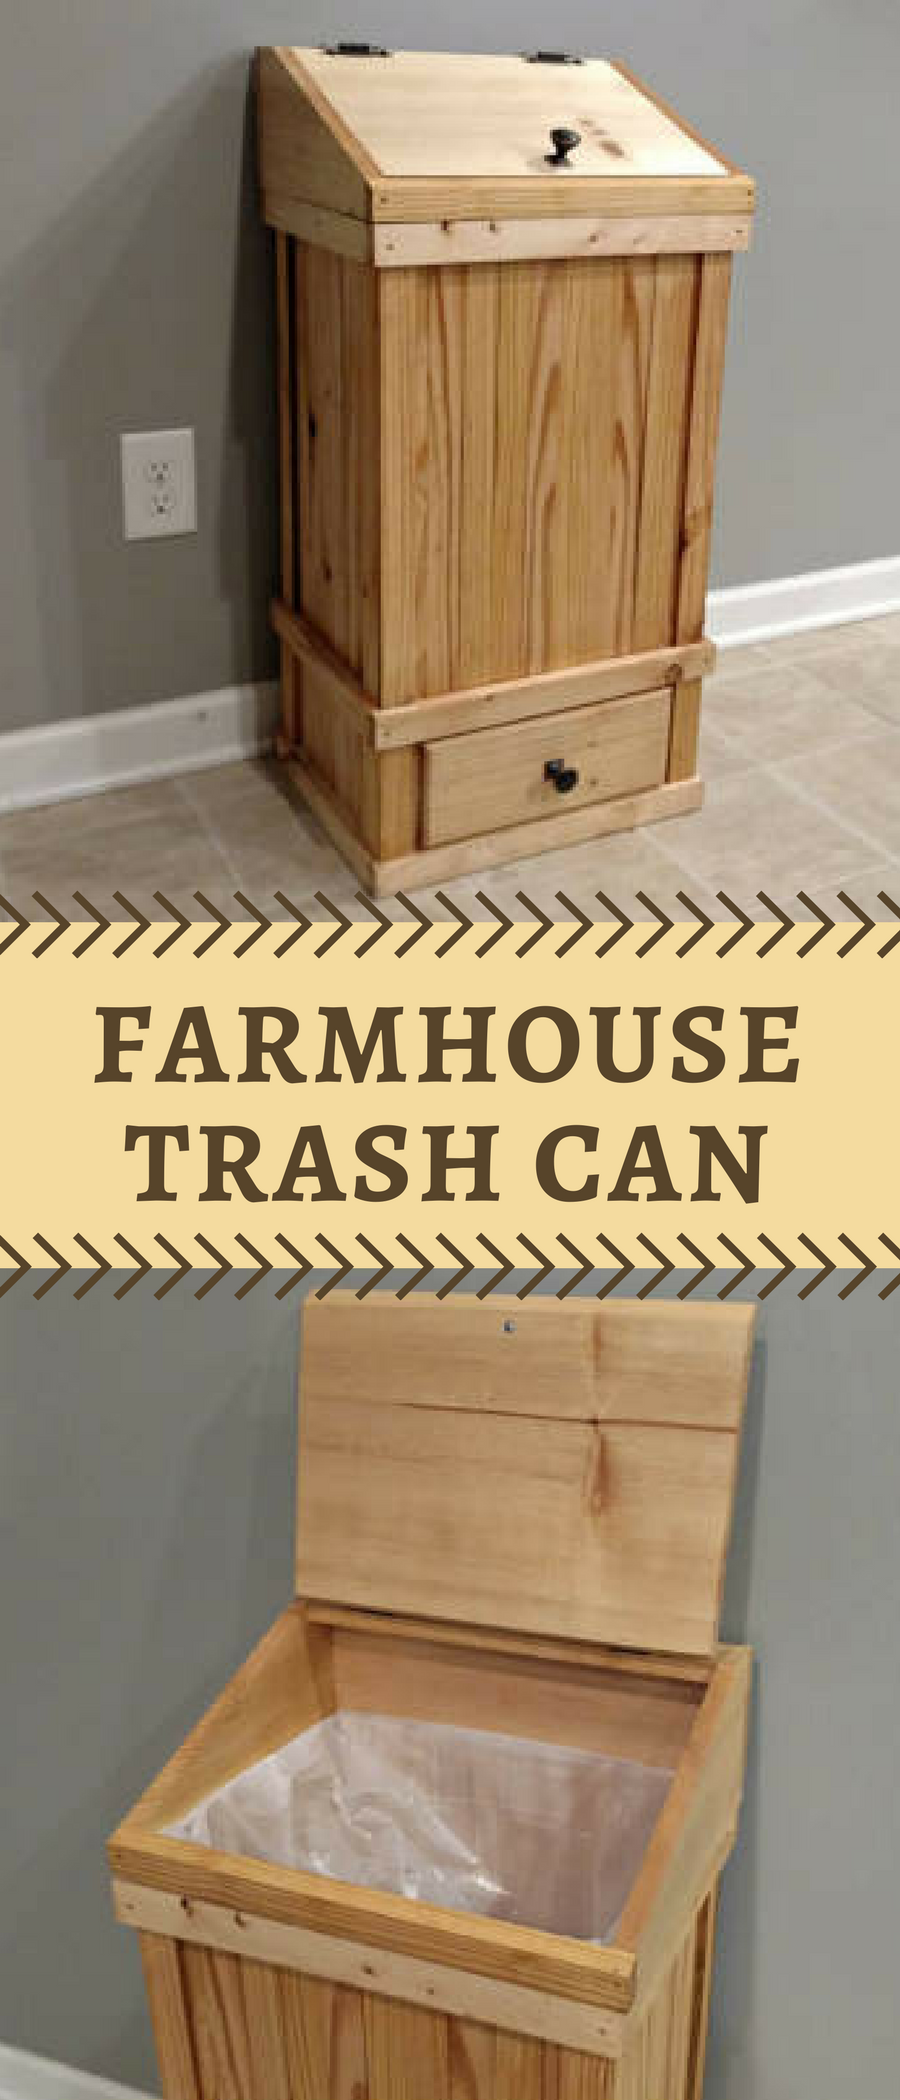 Farmhouse Style Decorative Wood Trash Bin Rustic Garbage Or Recycling Cover Minimalist Simple Decor Idea For The Home Cabin